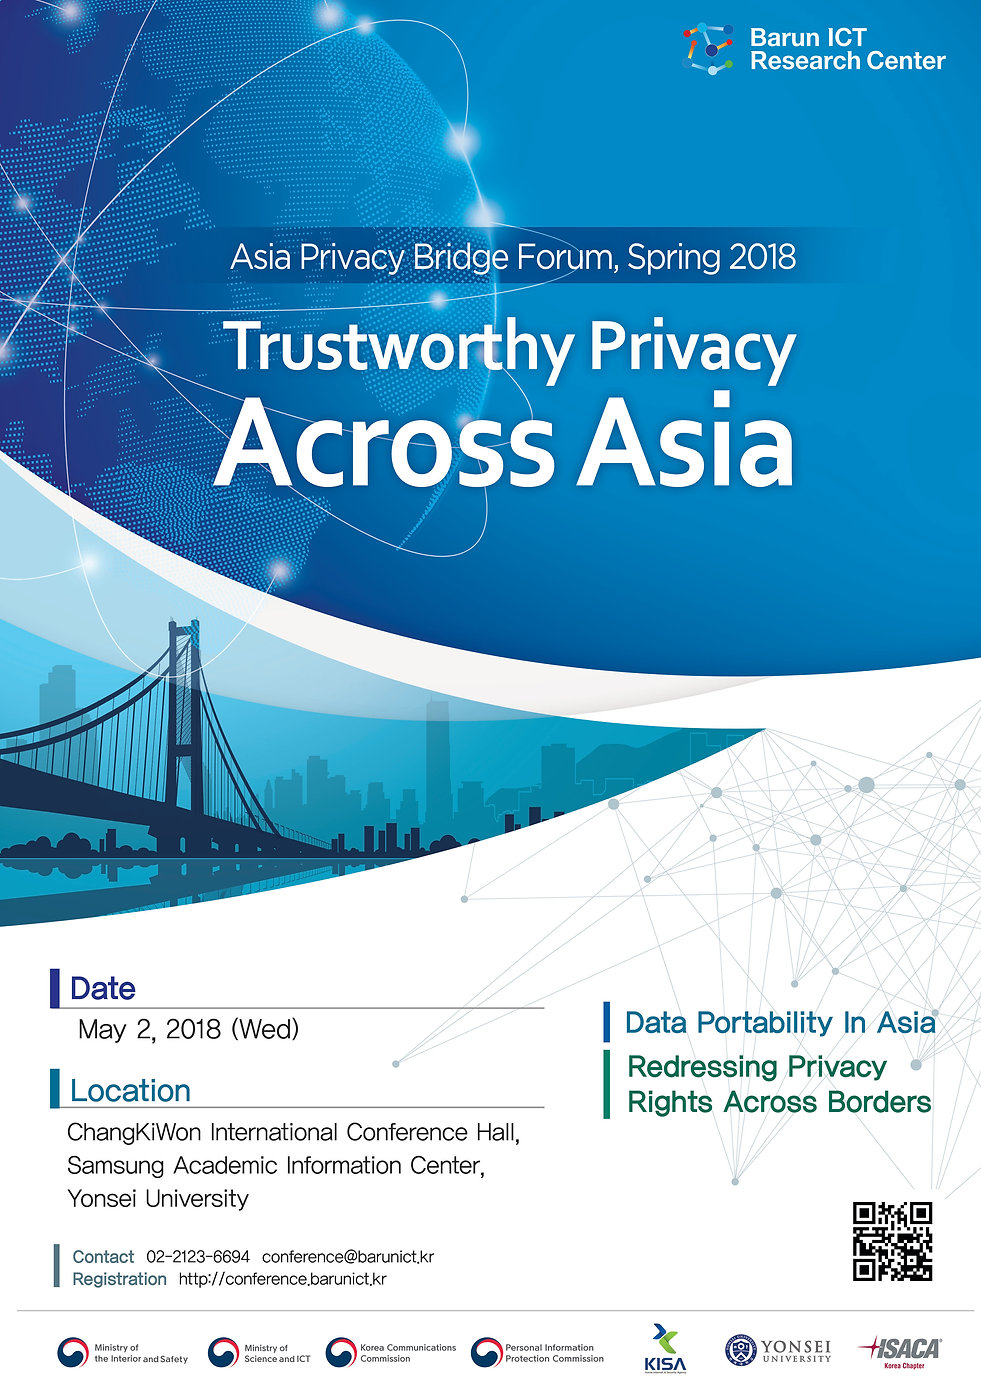 Asia Privacy Bridge Forum 2017